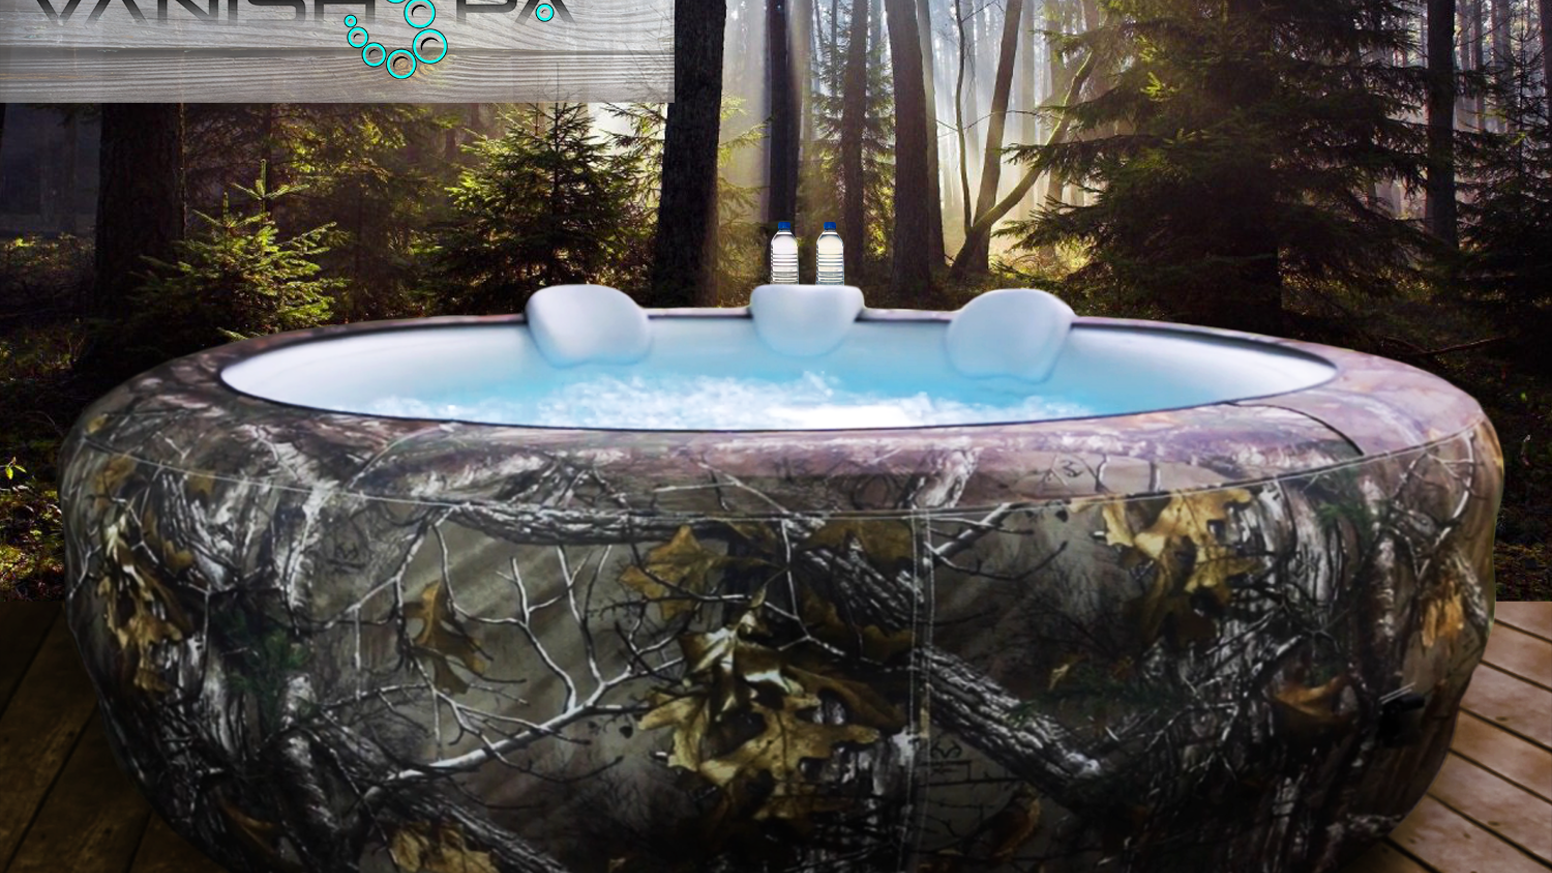 With concealment technology that is versatile and easy to assemble, the Vanish Spa is the most advanced portable hot tub ever created.